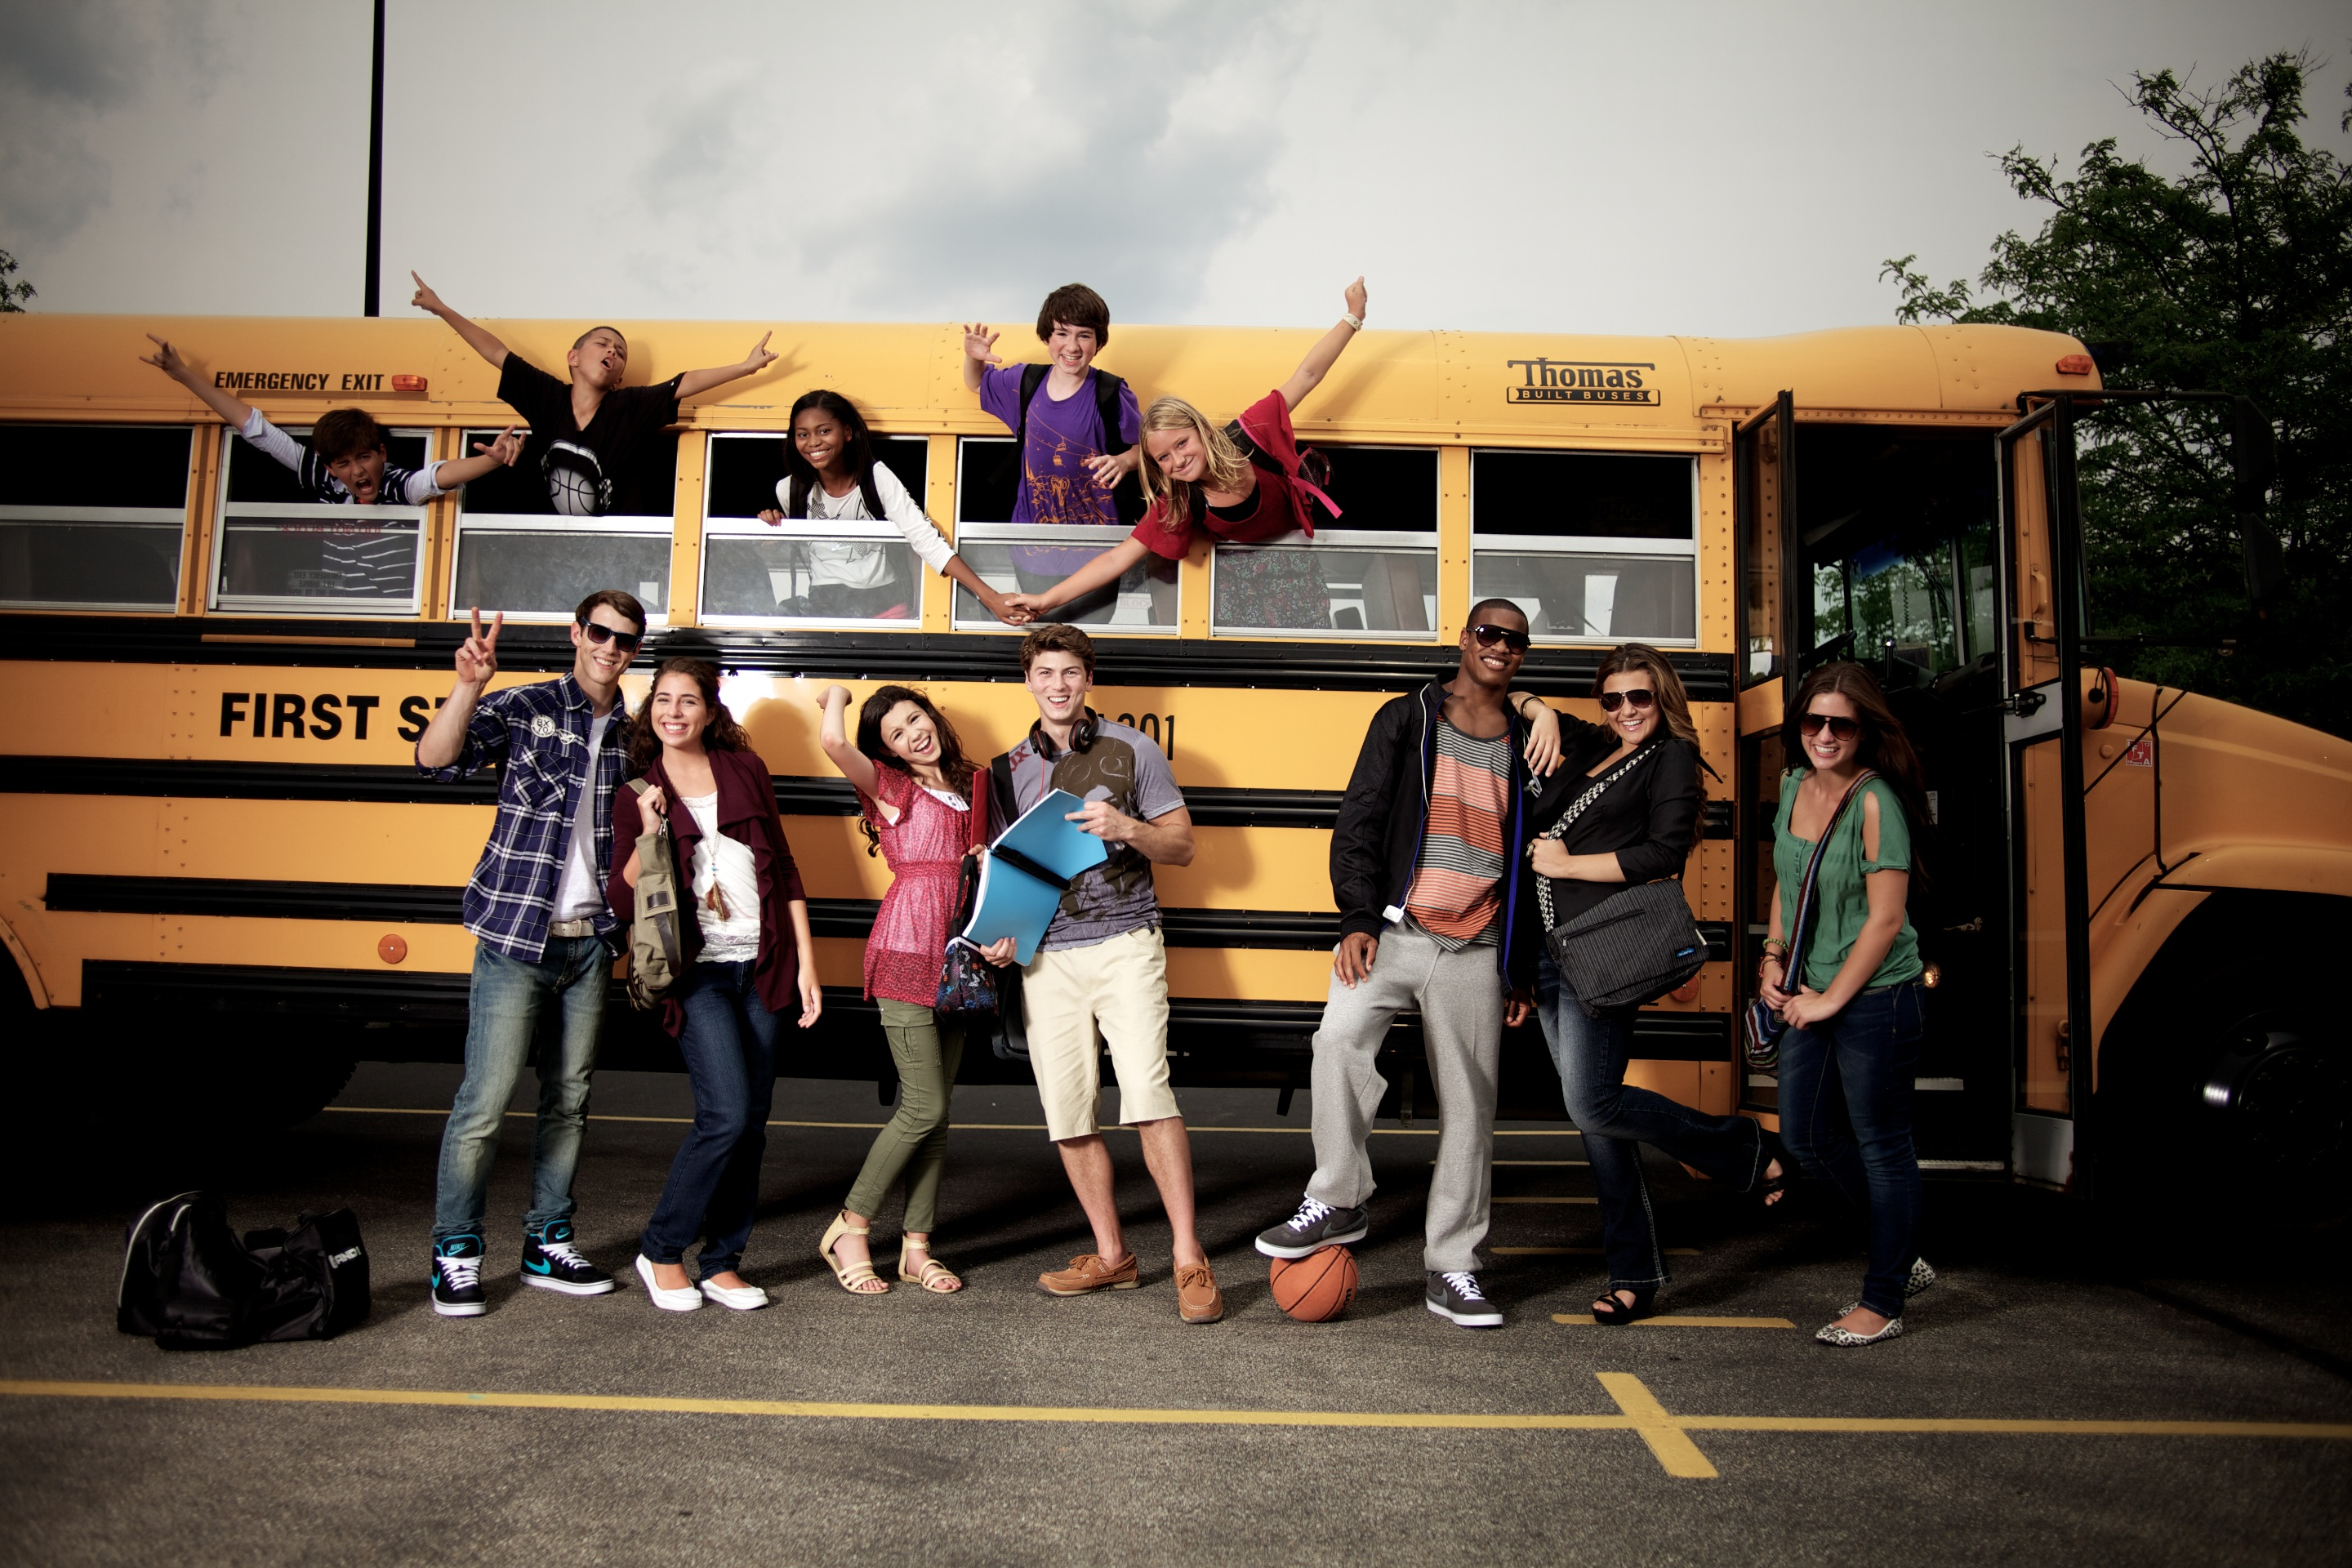 photograph of students with a school bus, back to school retail fashion photography by travis neely